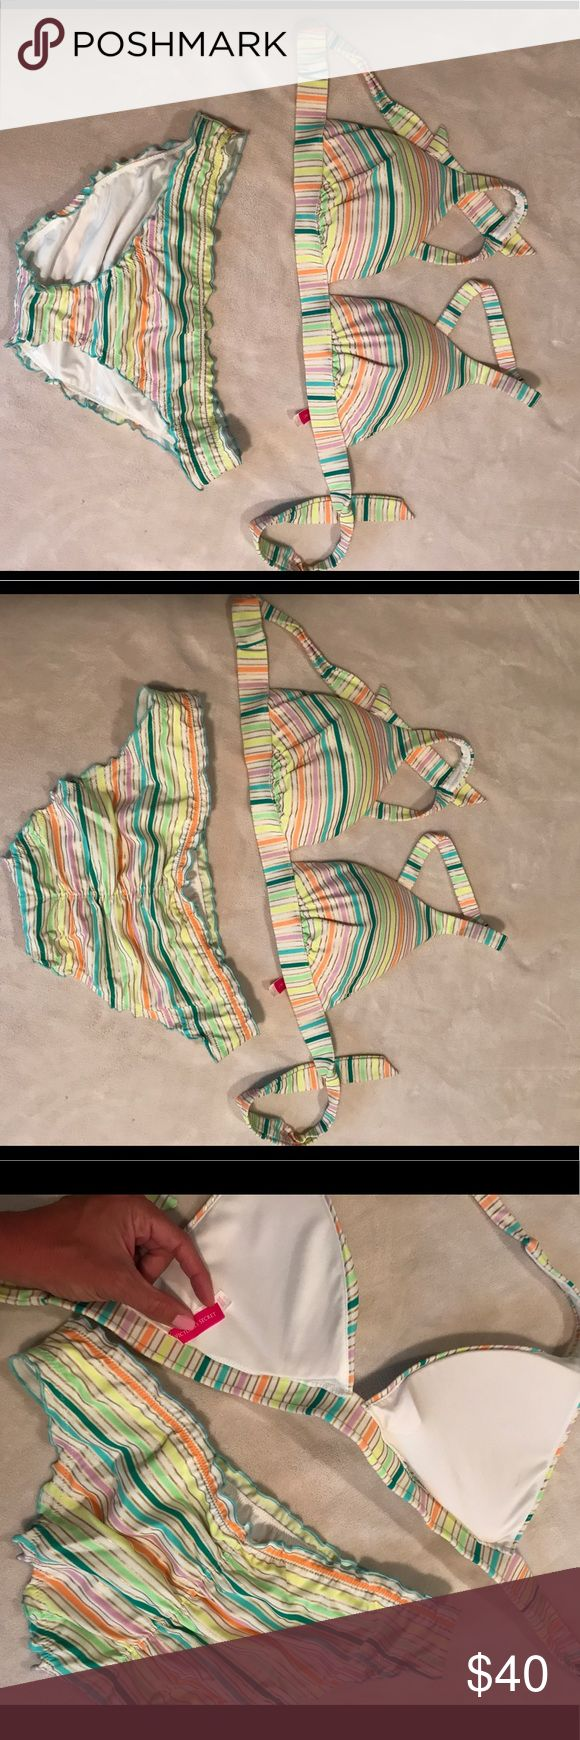 Victoria's Secret Bikini Brand New, never worn. Triangle/halter type with extra padding for extreme push-up and scrunch bottom modest coverage ruched bottoms! Pretty vibrant colors! Victoria's Secret Swim Bikinis